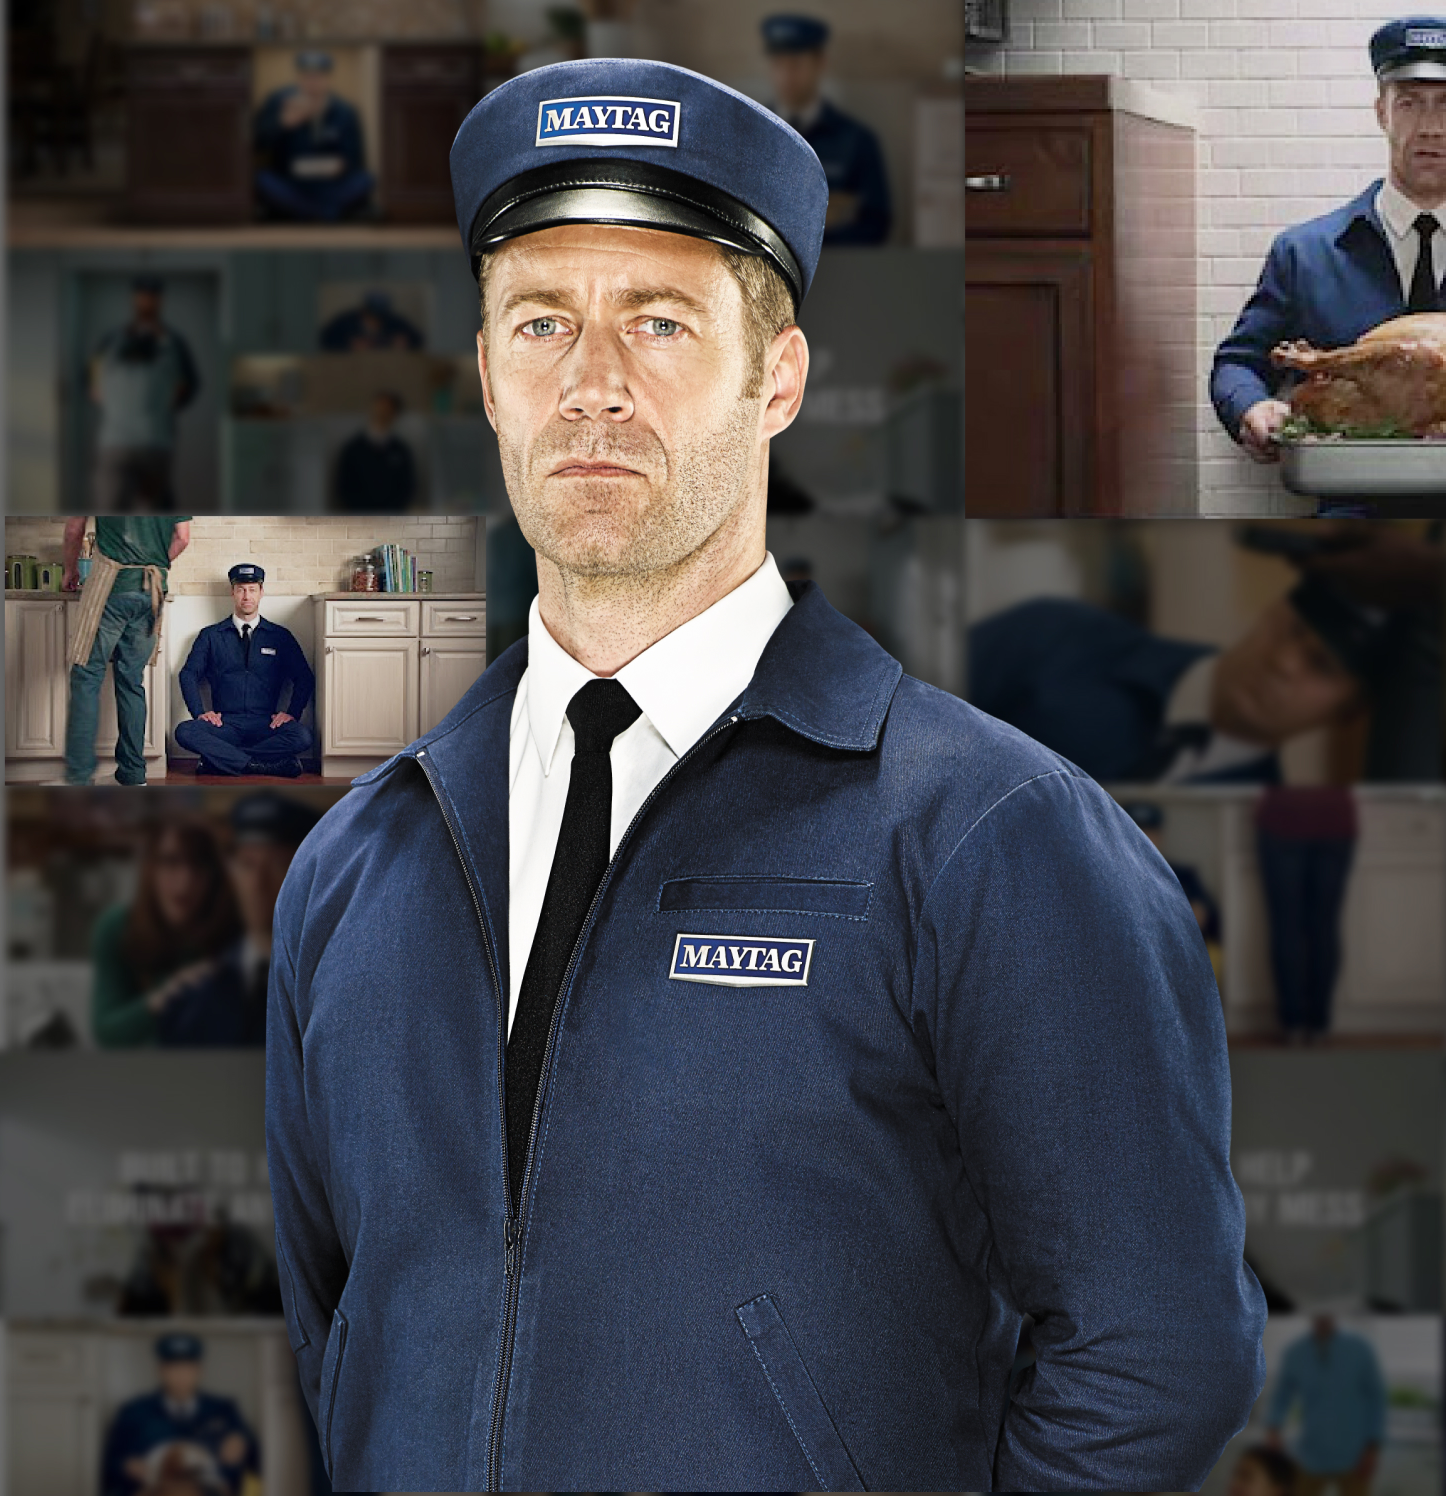 When you trust Maytag, you trust a company backed by American dependability.